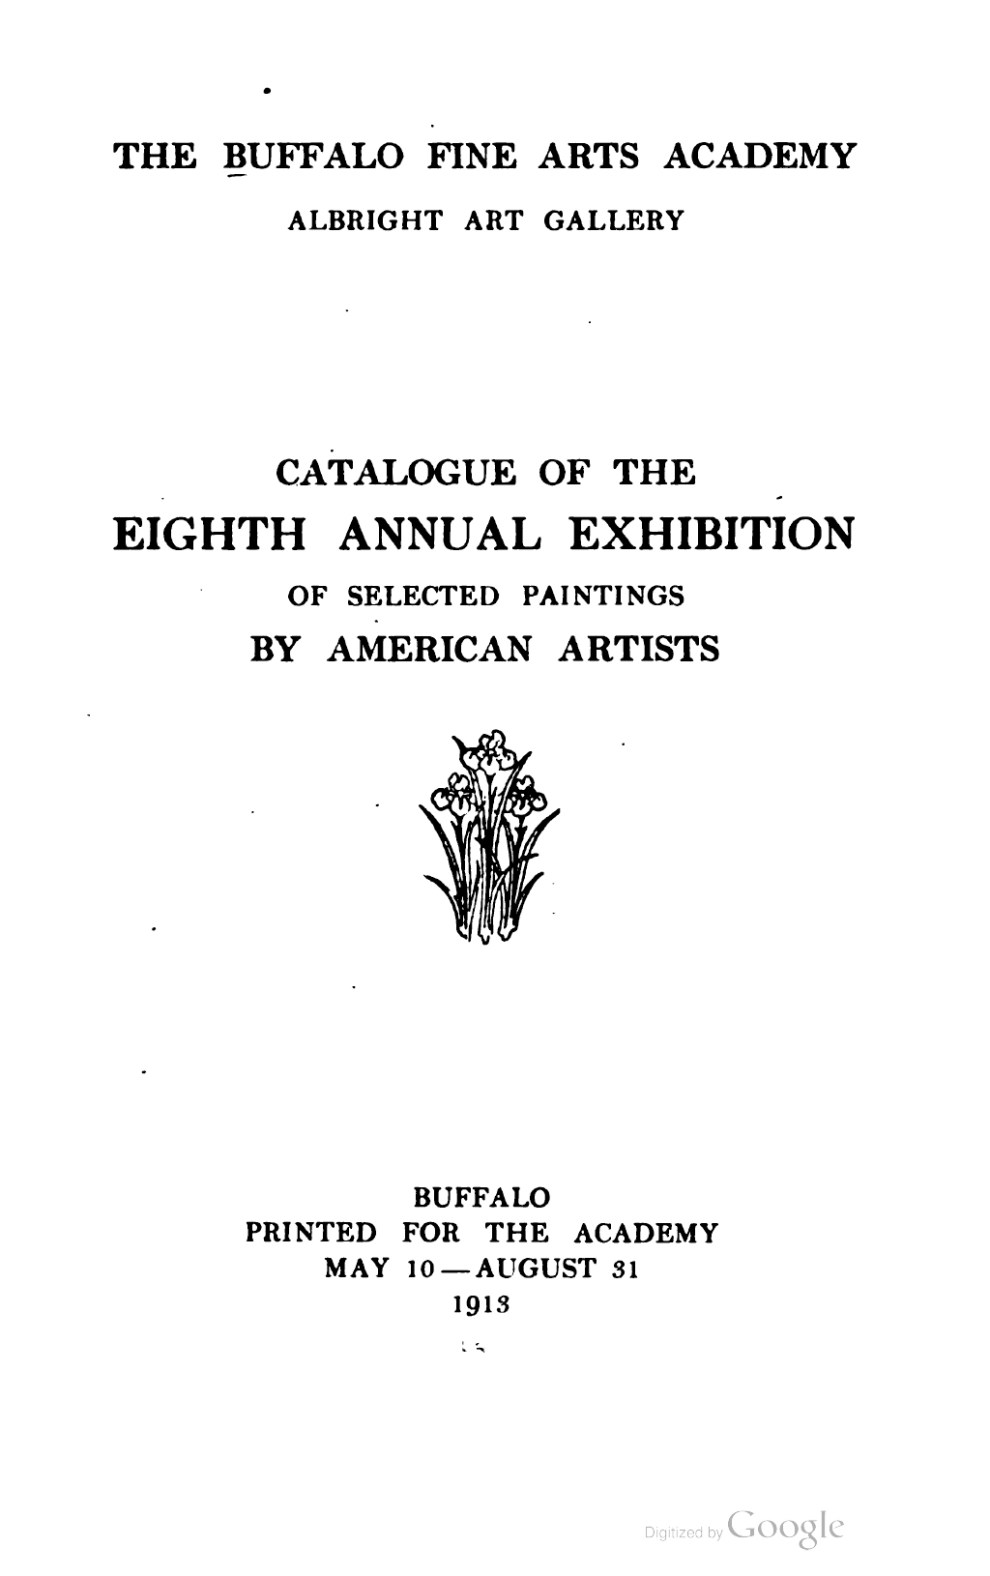 "1913 Buffalo Fine Arts Academy, Albright Art Gallery, Buffalo, NY, ""Eighth Annual Exhibition of Selected Paintings by American Artists"", May 10 – August 31"